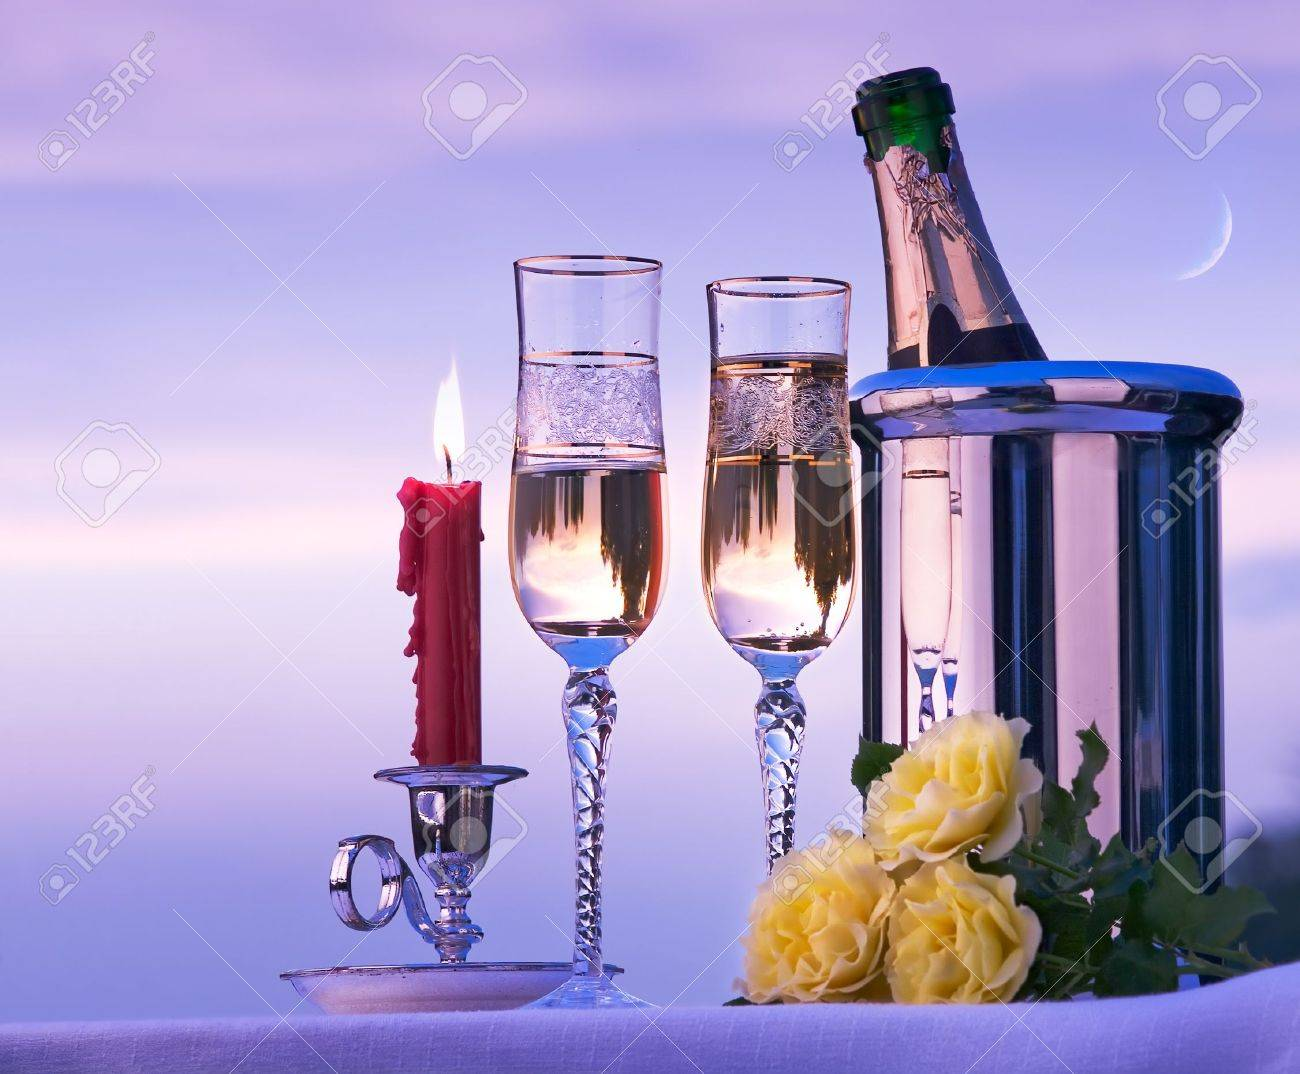 happy romantic dinner with wine on the sky background Stock Photo - 12393408